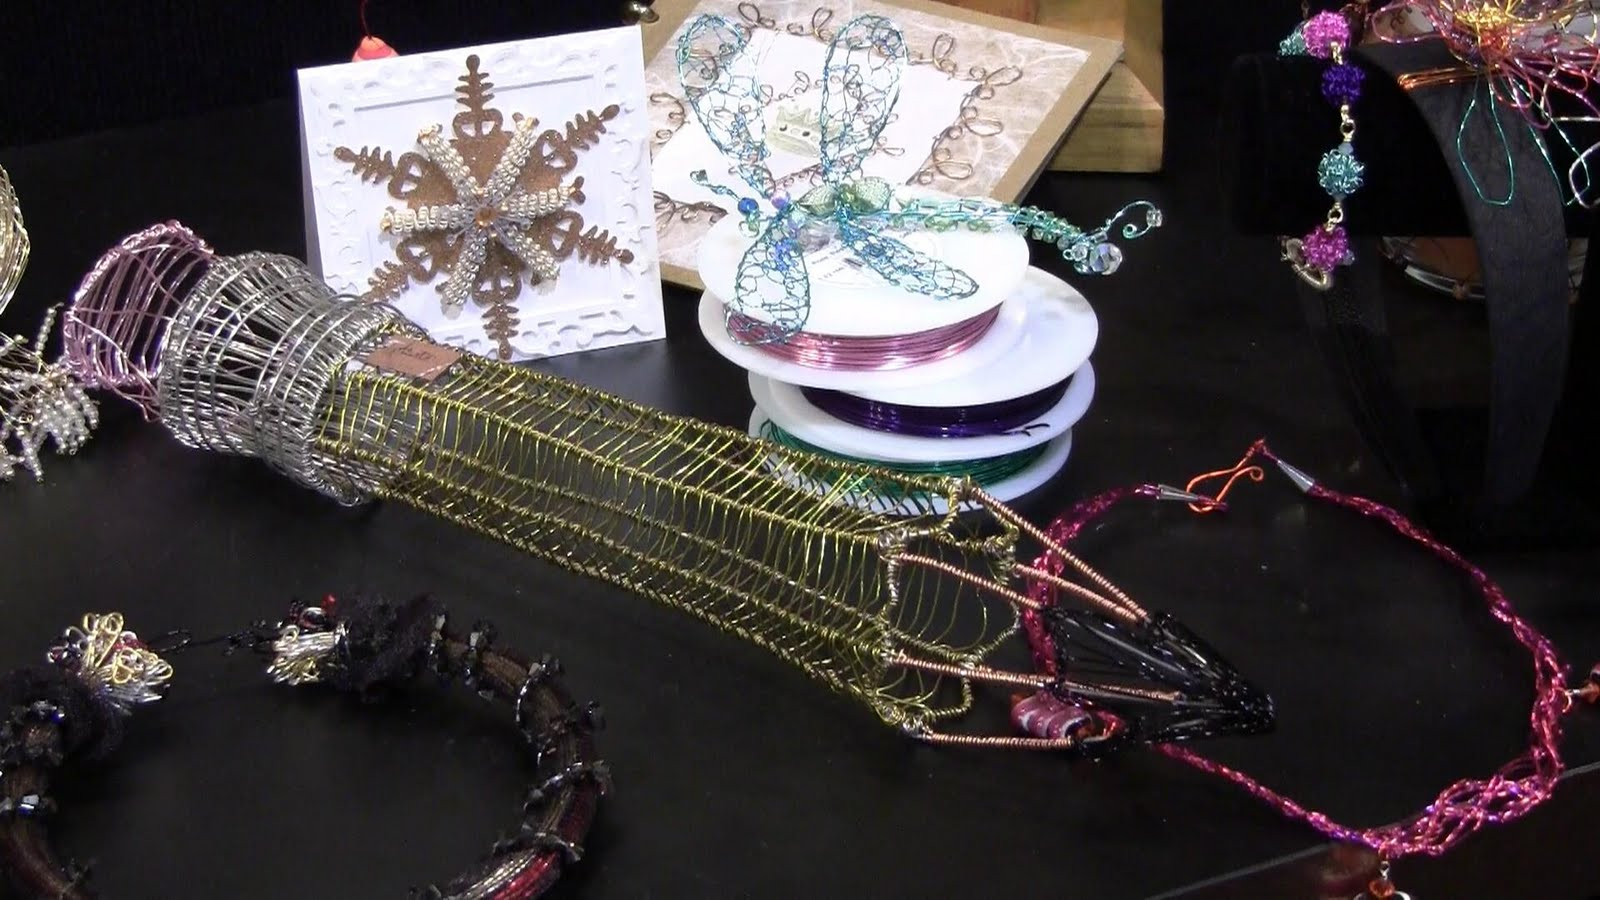 Artistic wire bracelet jig patterns ~ Just another WordPress site